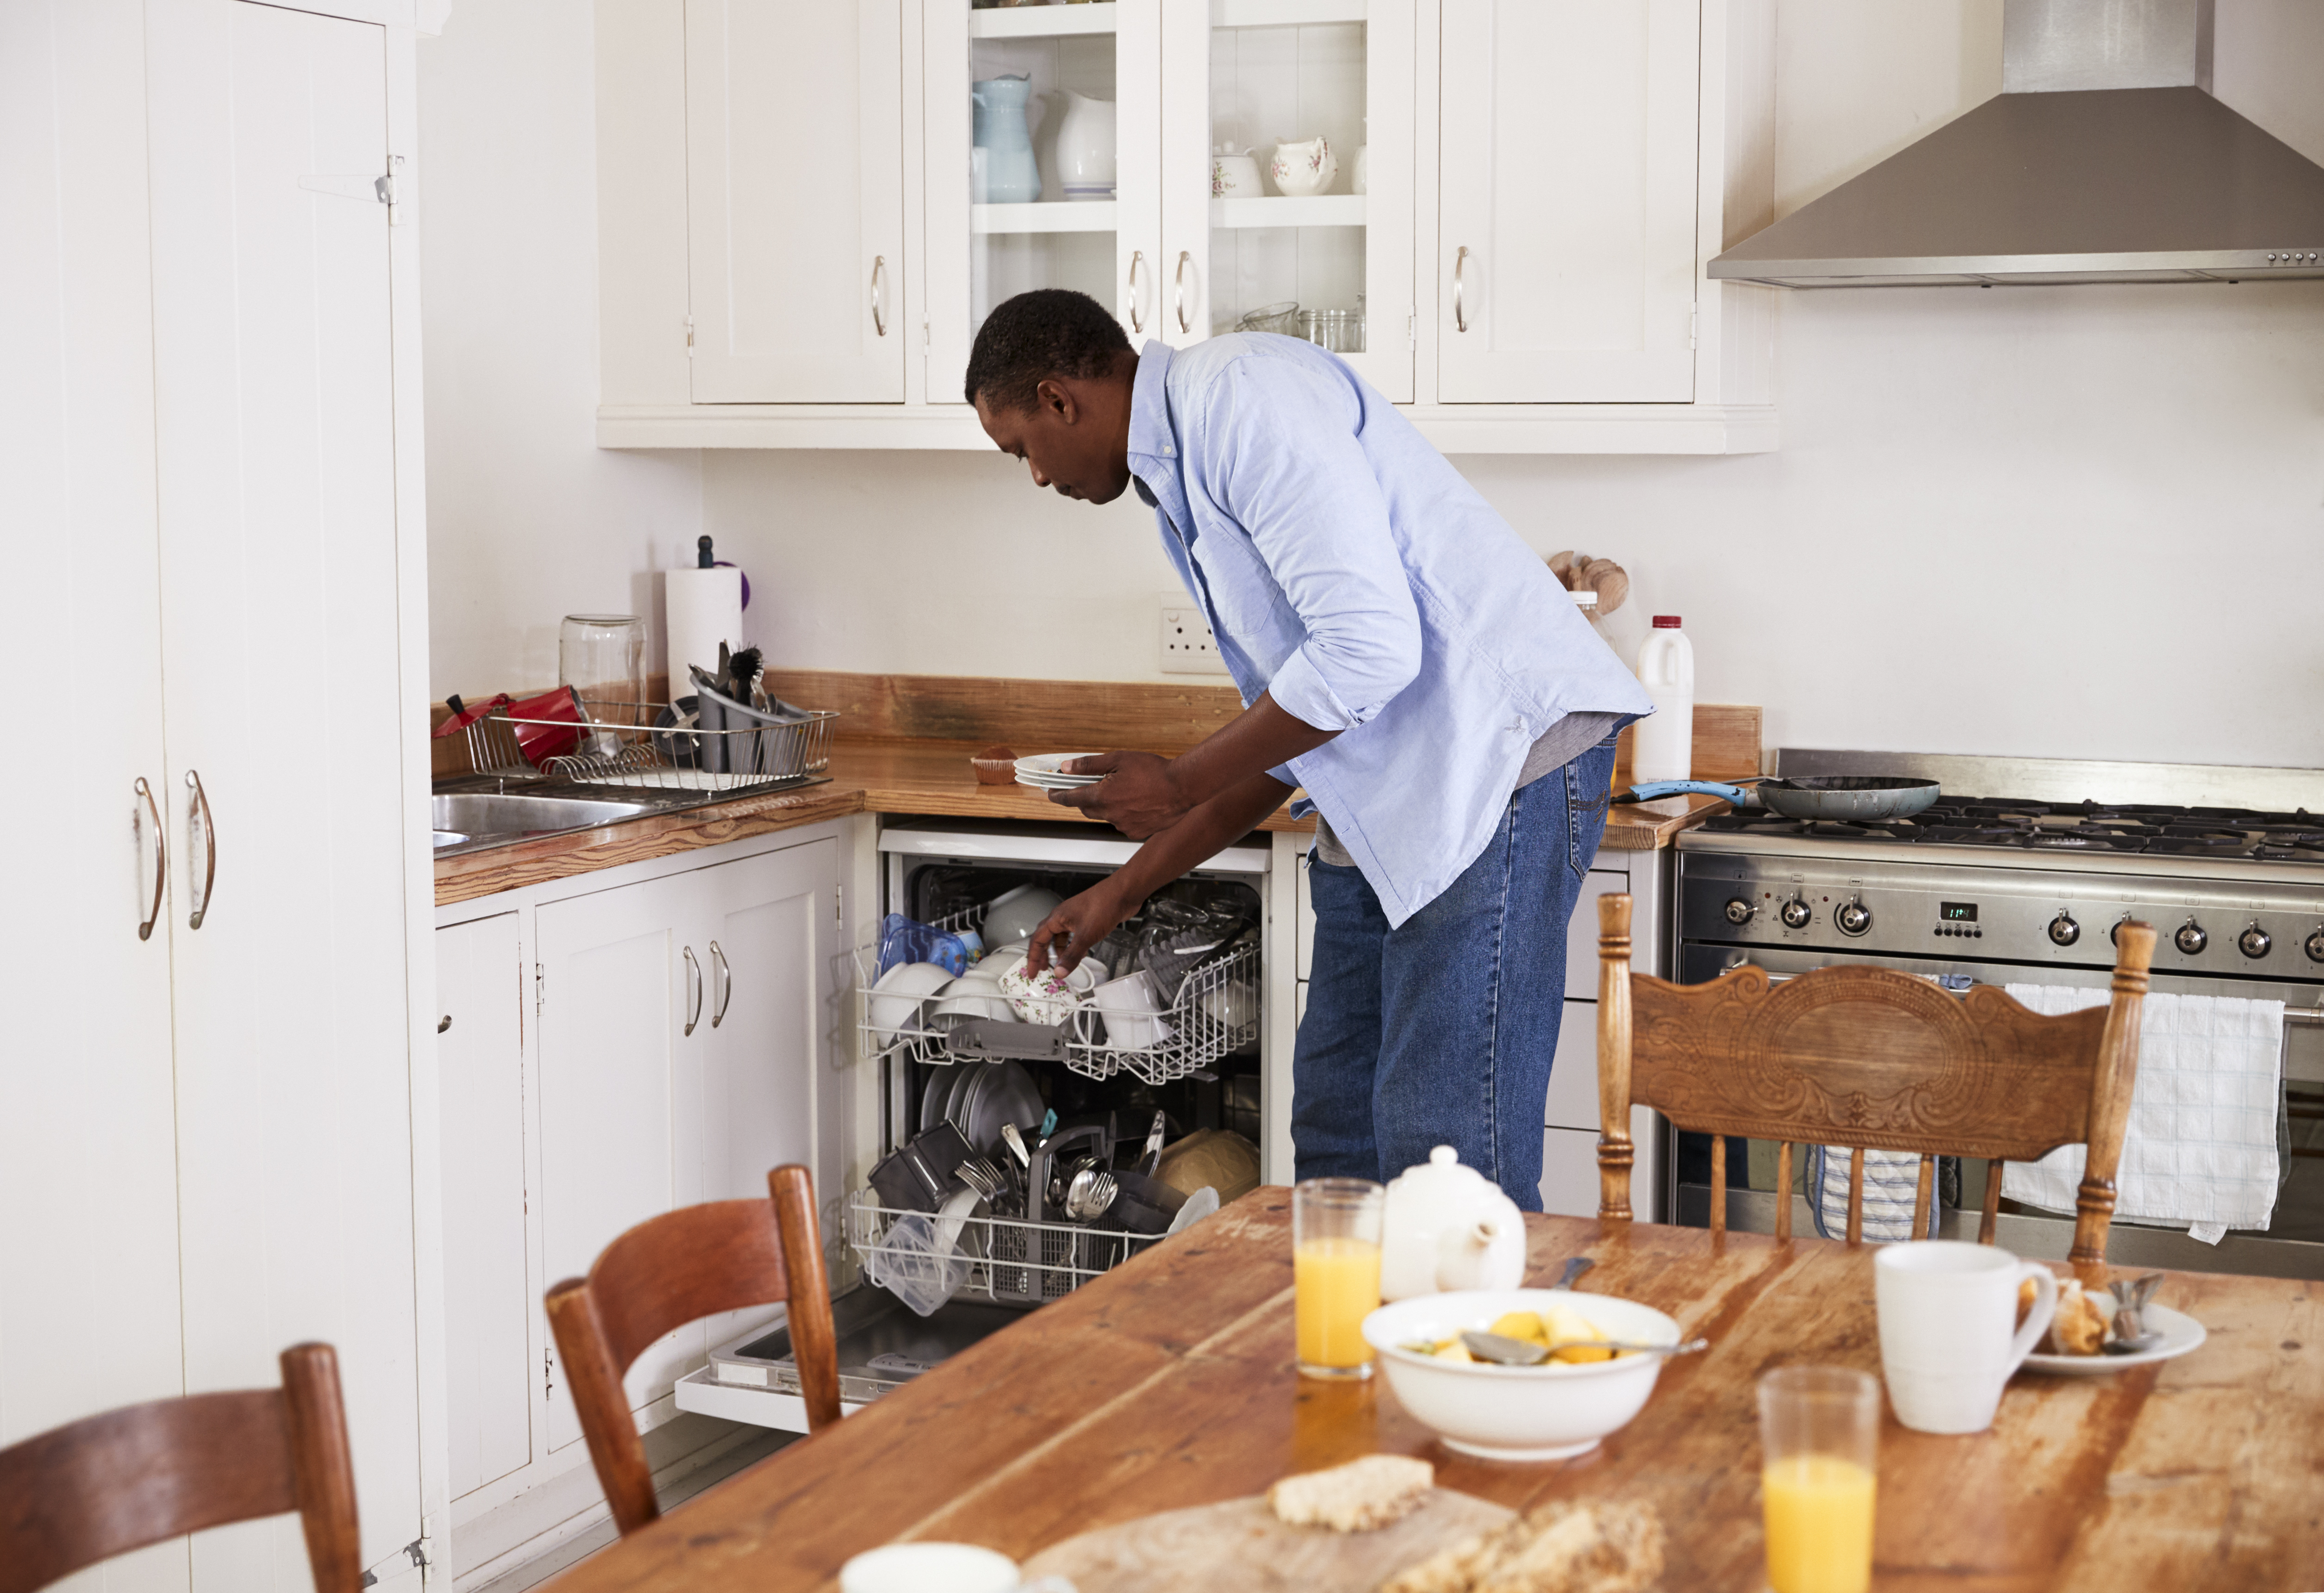 How To Unblock A Dishwasher >> How To Unblock A Dishwasher Home Guides Sf Gate